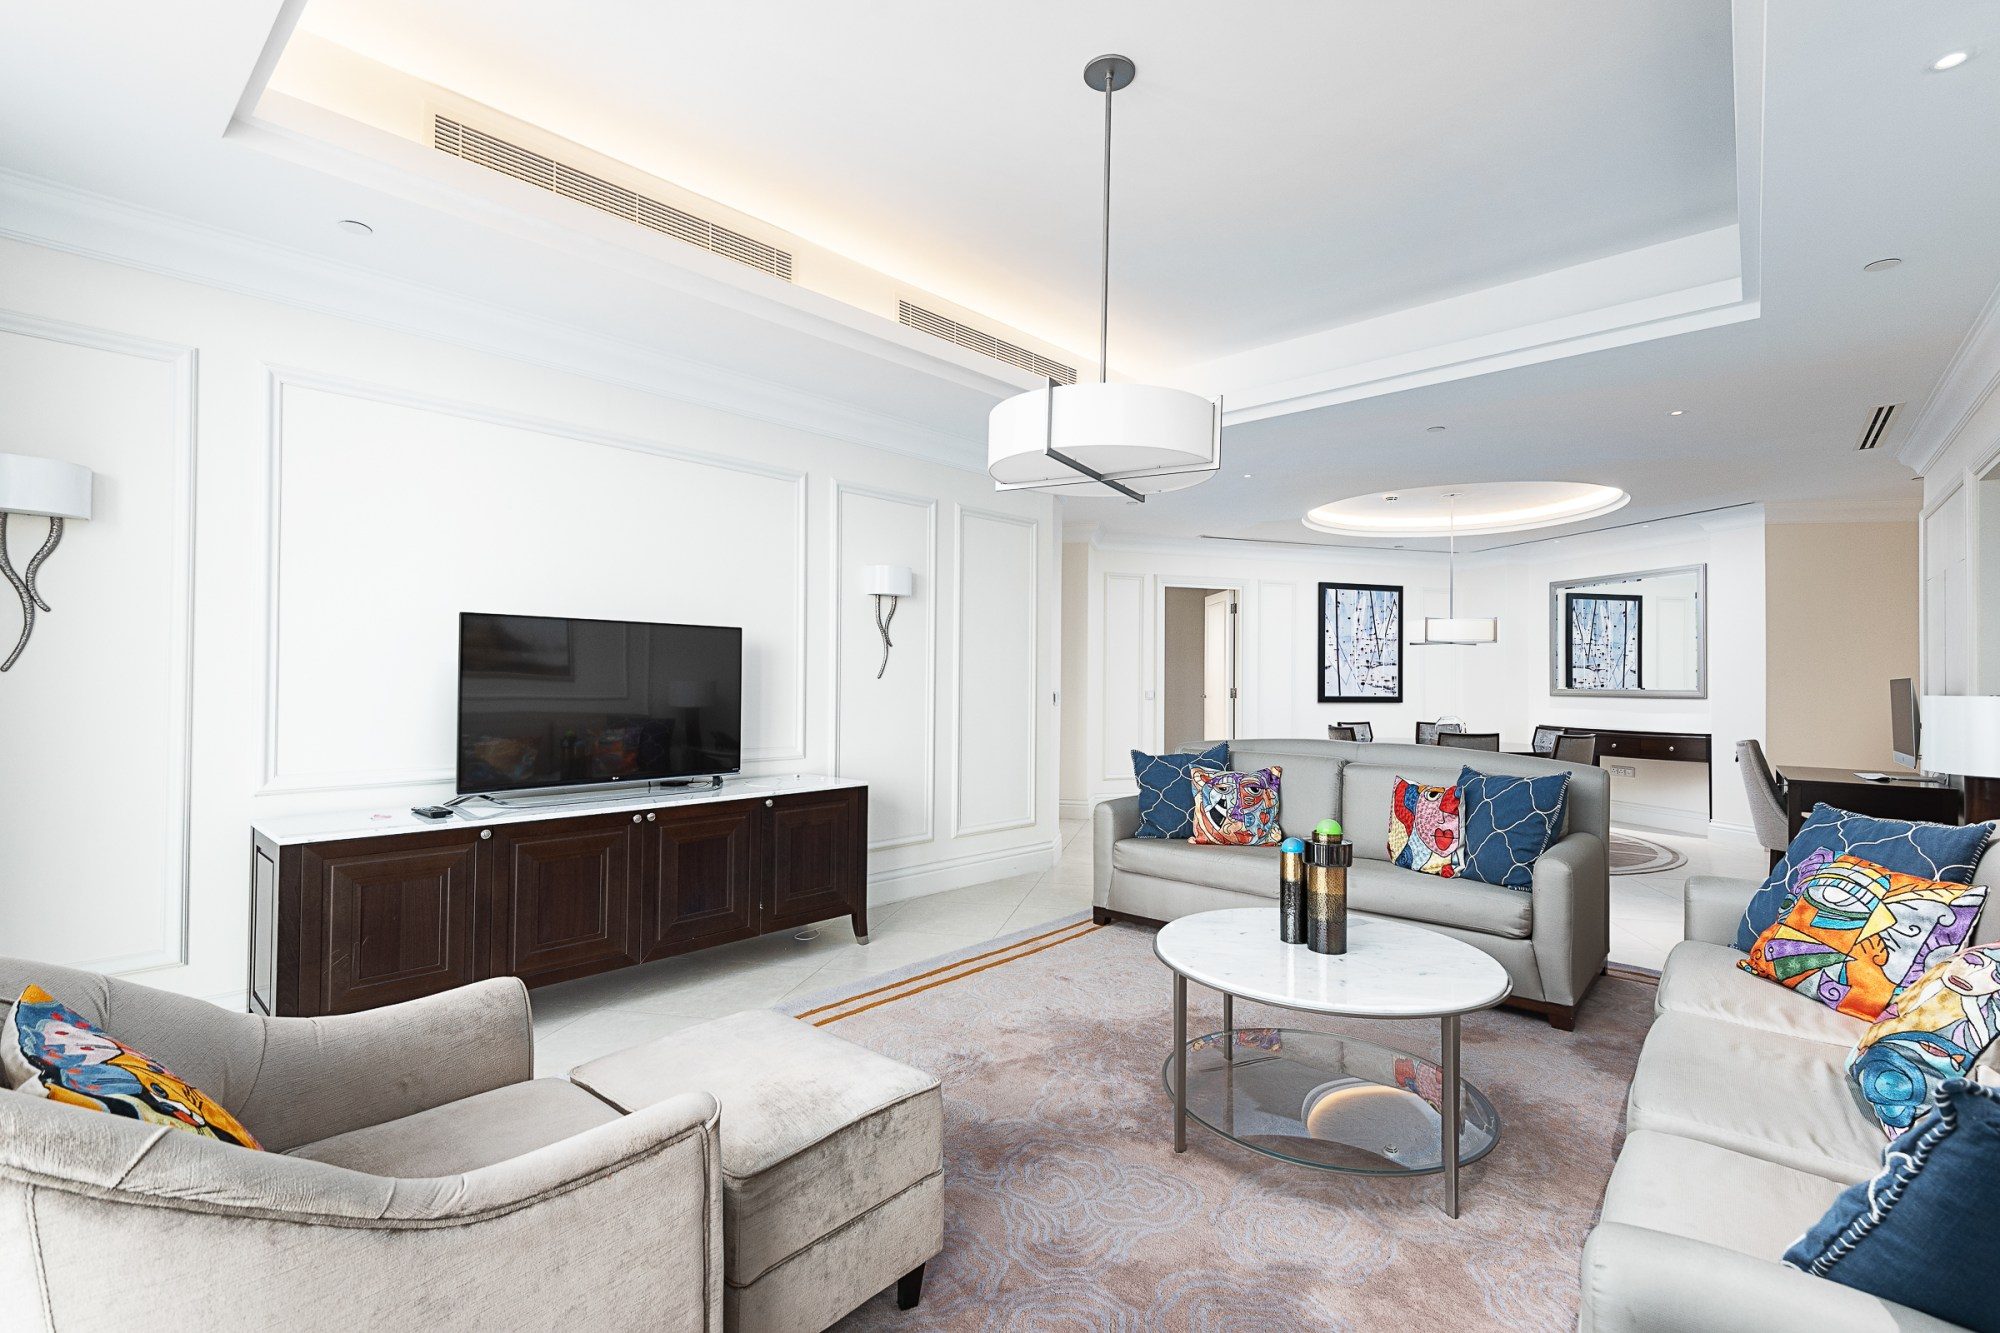 Reduced | Luxury Furnished 3 BR | Burj View